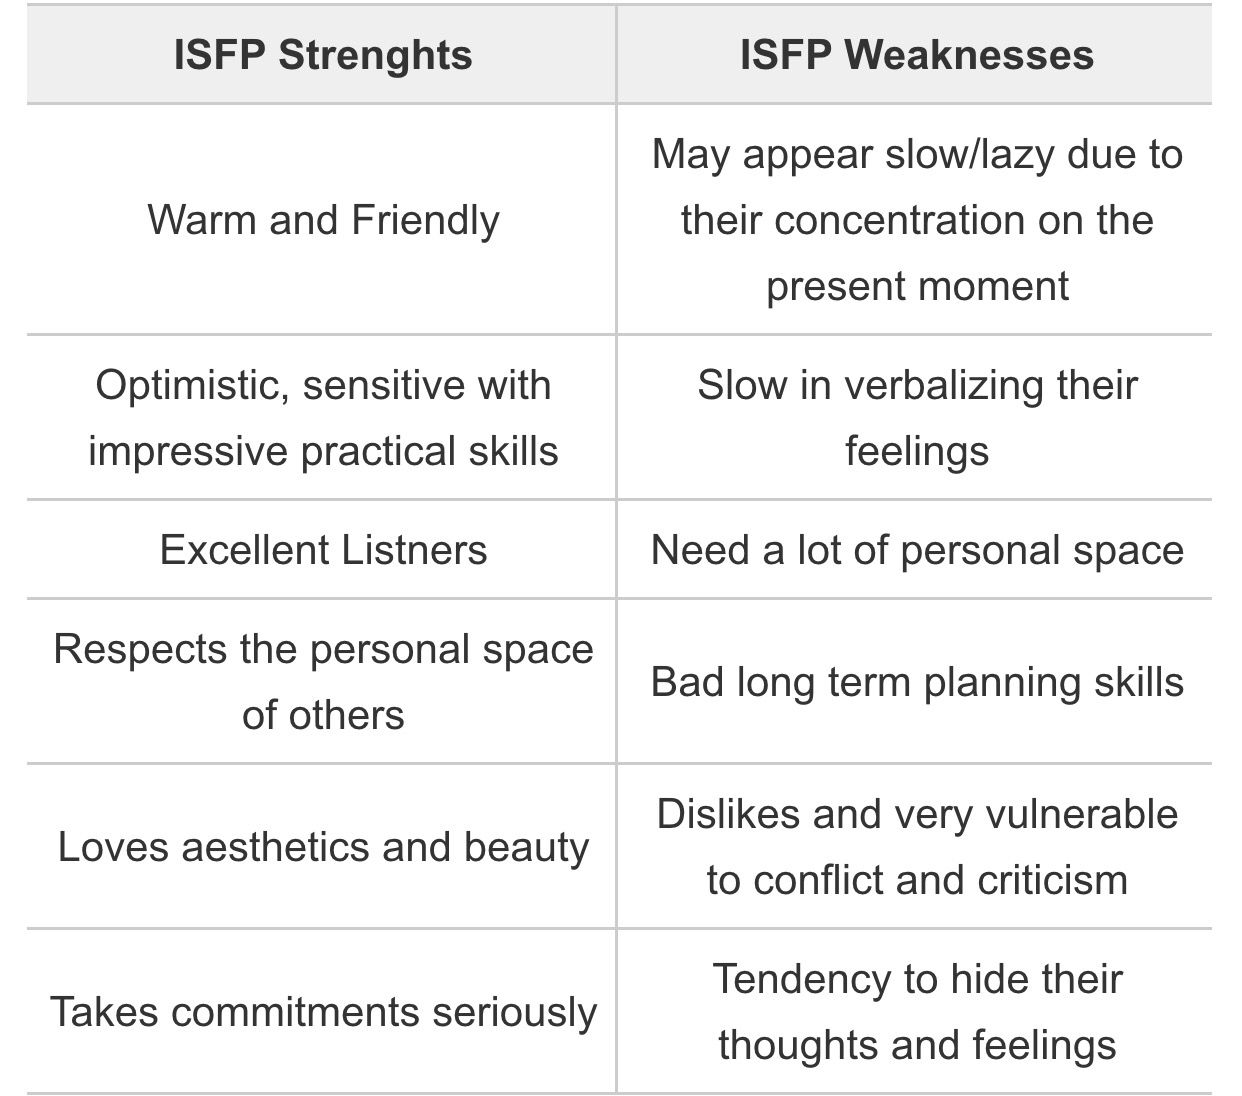 isfp does the word listner mean listener or that we are good at isfp does the word listner mean listener or that we are good at making lists <<<<listener like good at listening